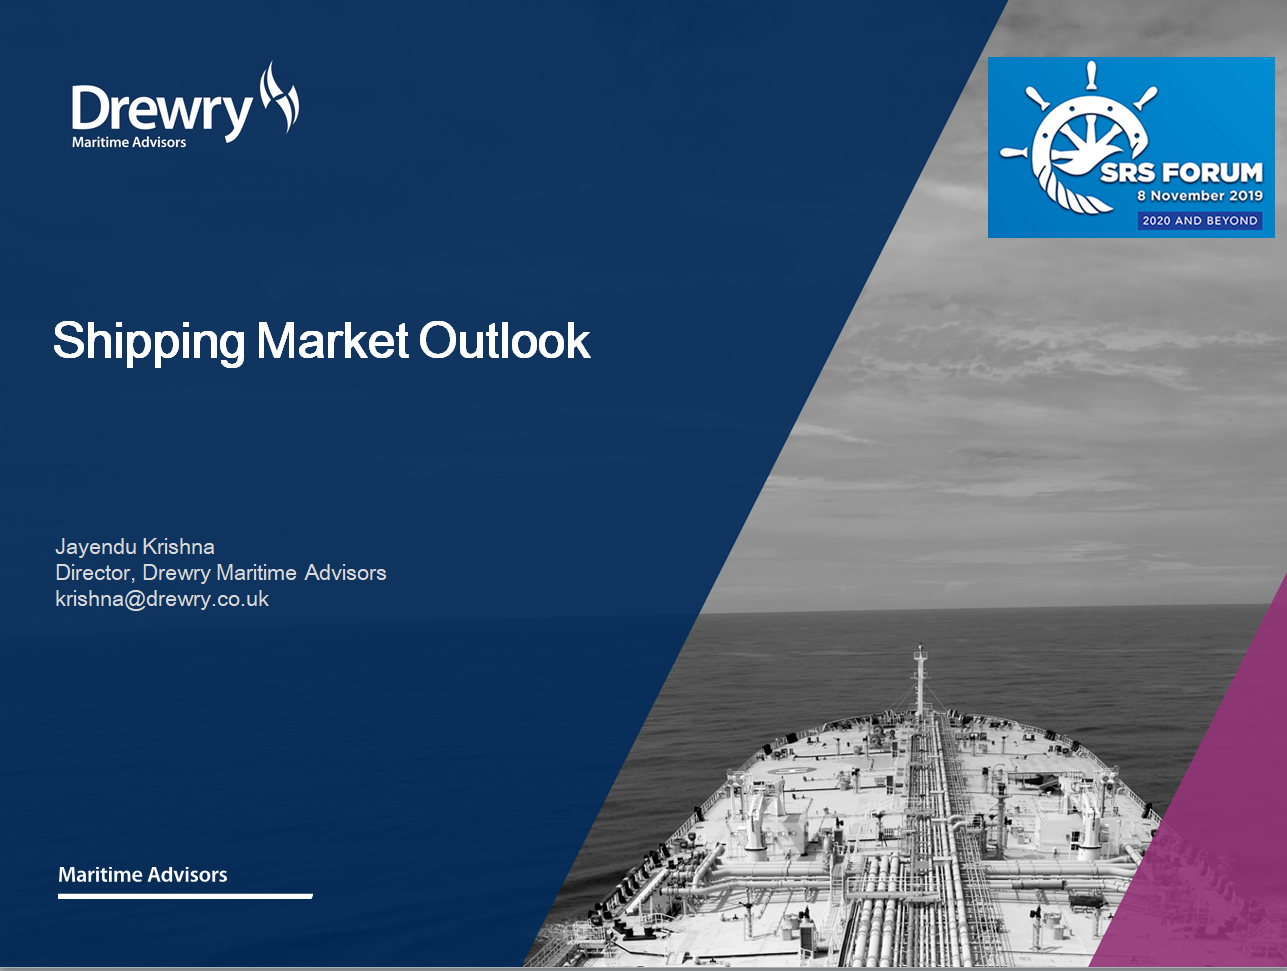 Drewry presentation at the annual Singapore Registry of Ships (SRS) Forum, organised by Maritime and Port Authority of Singapore (MPA)